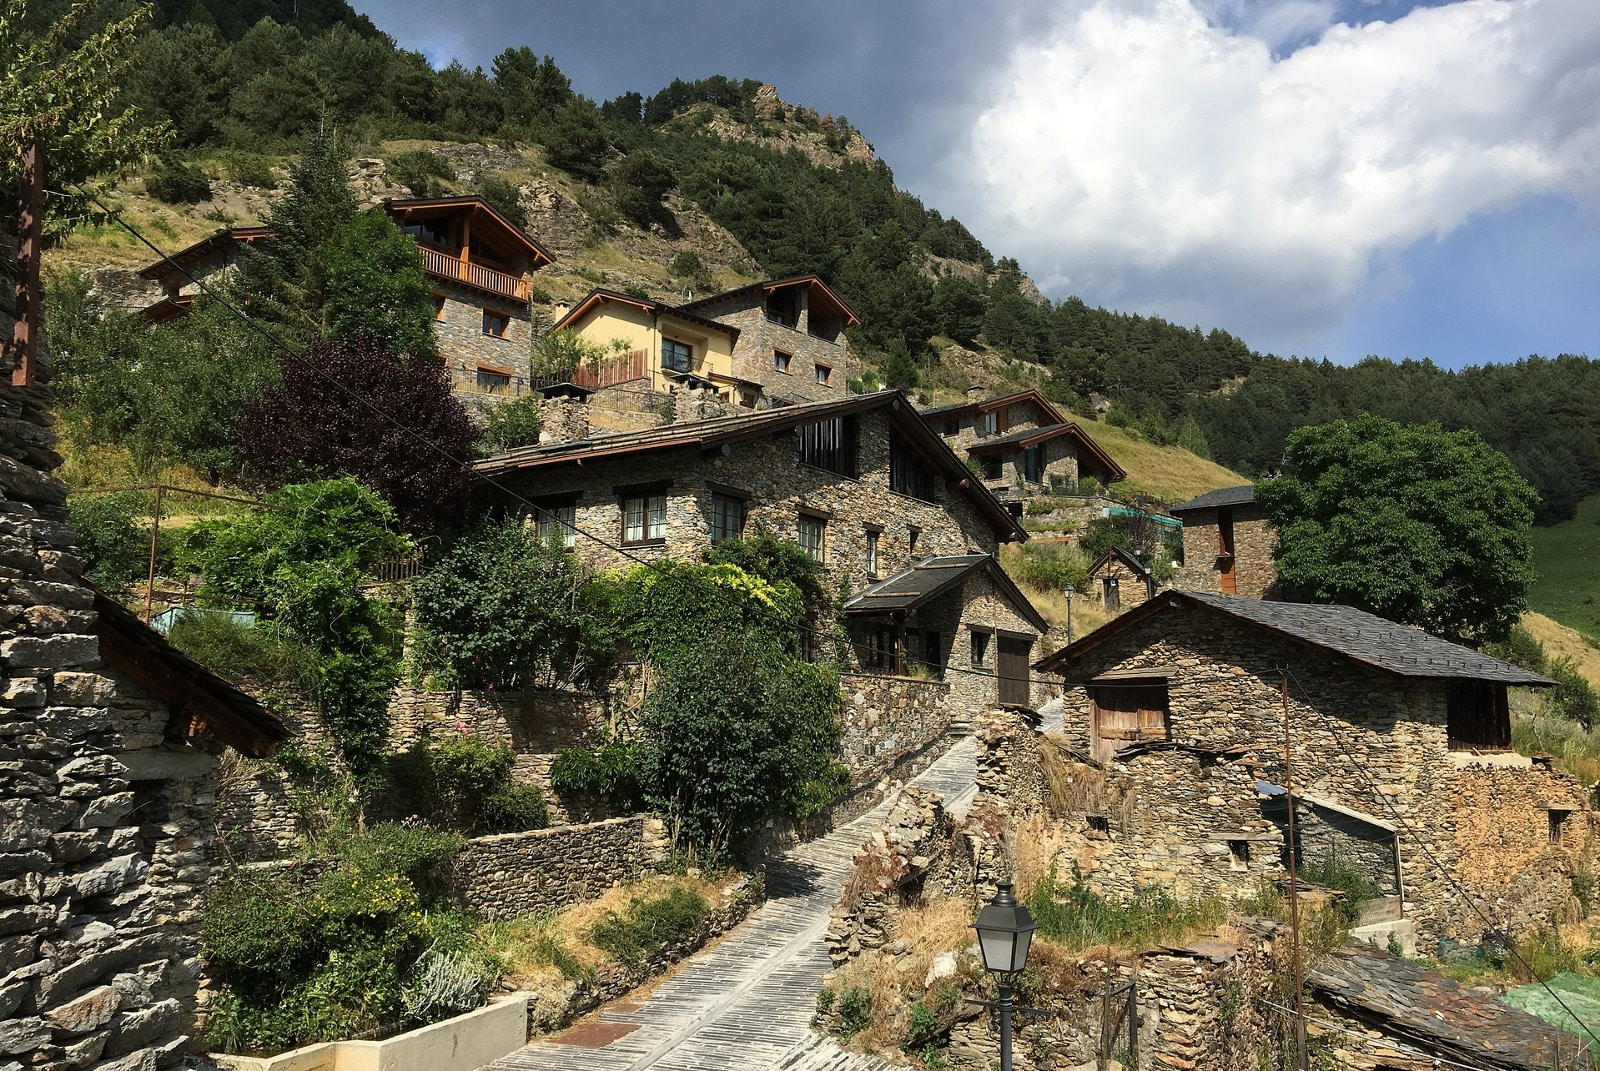 From the scenic views to the relative seclusion, there are many pluses and minuses to living in Andorra.